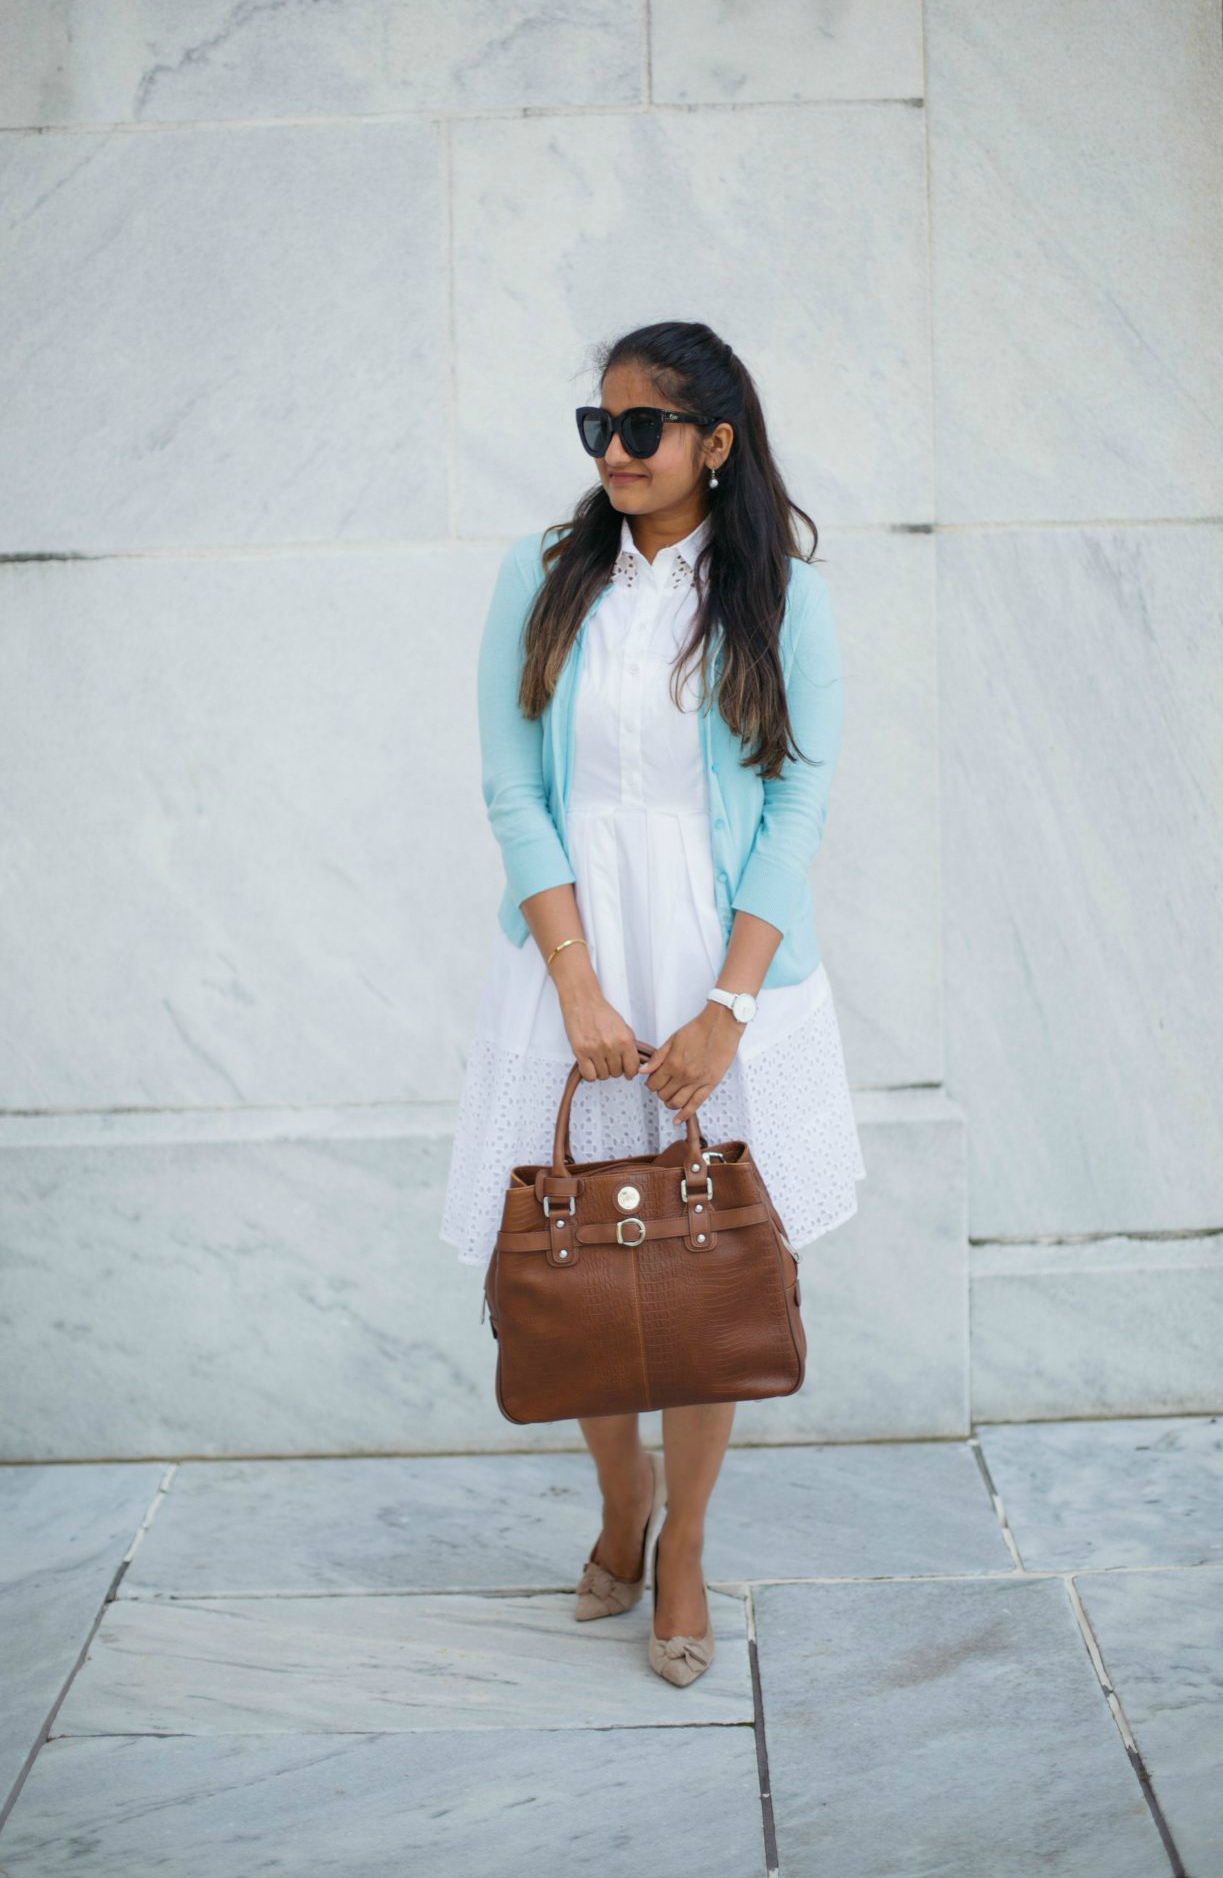 Wearing Ann taylor white eyelet shirtdress with Jill-e Designs E-GO Career Bag | Colorful Fall Work Outfits featured by popular Ohio modest fashion blogger, Dreaming Loud